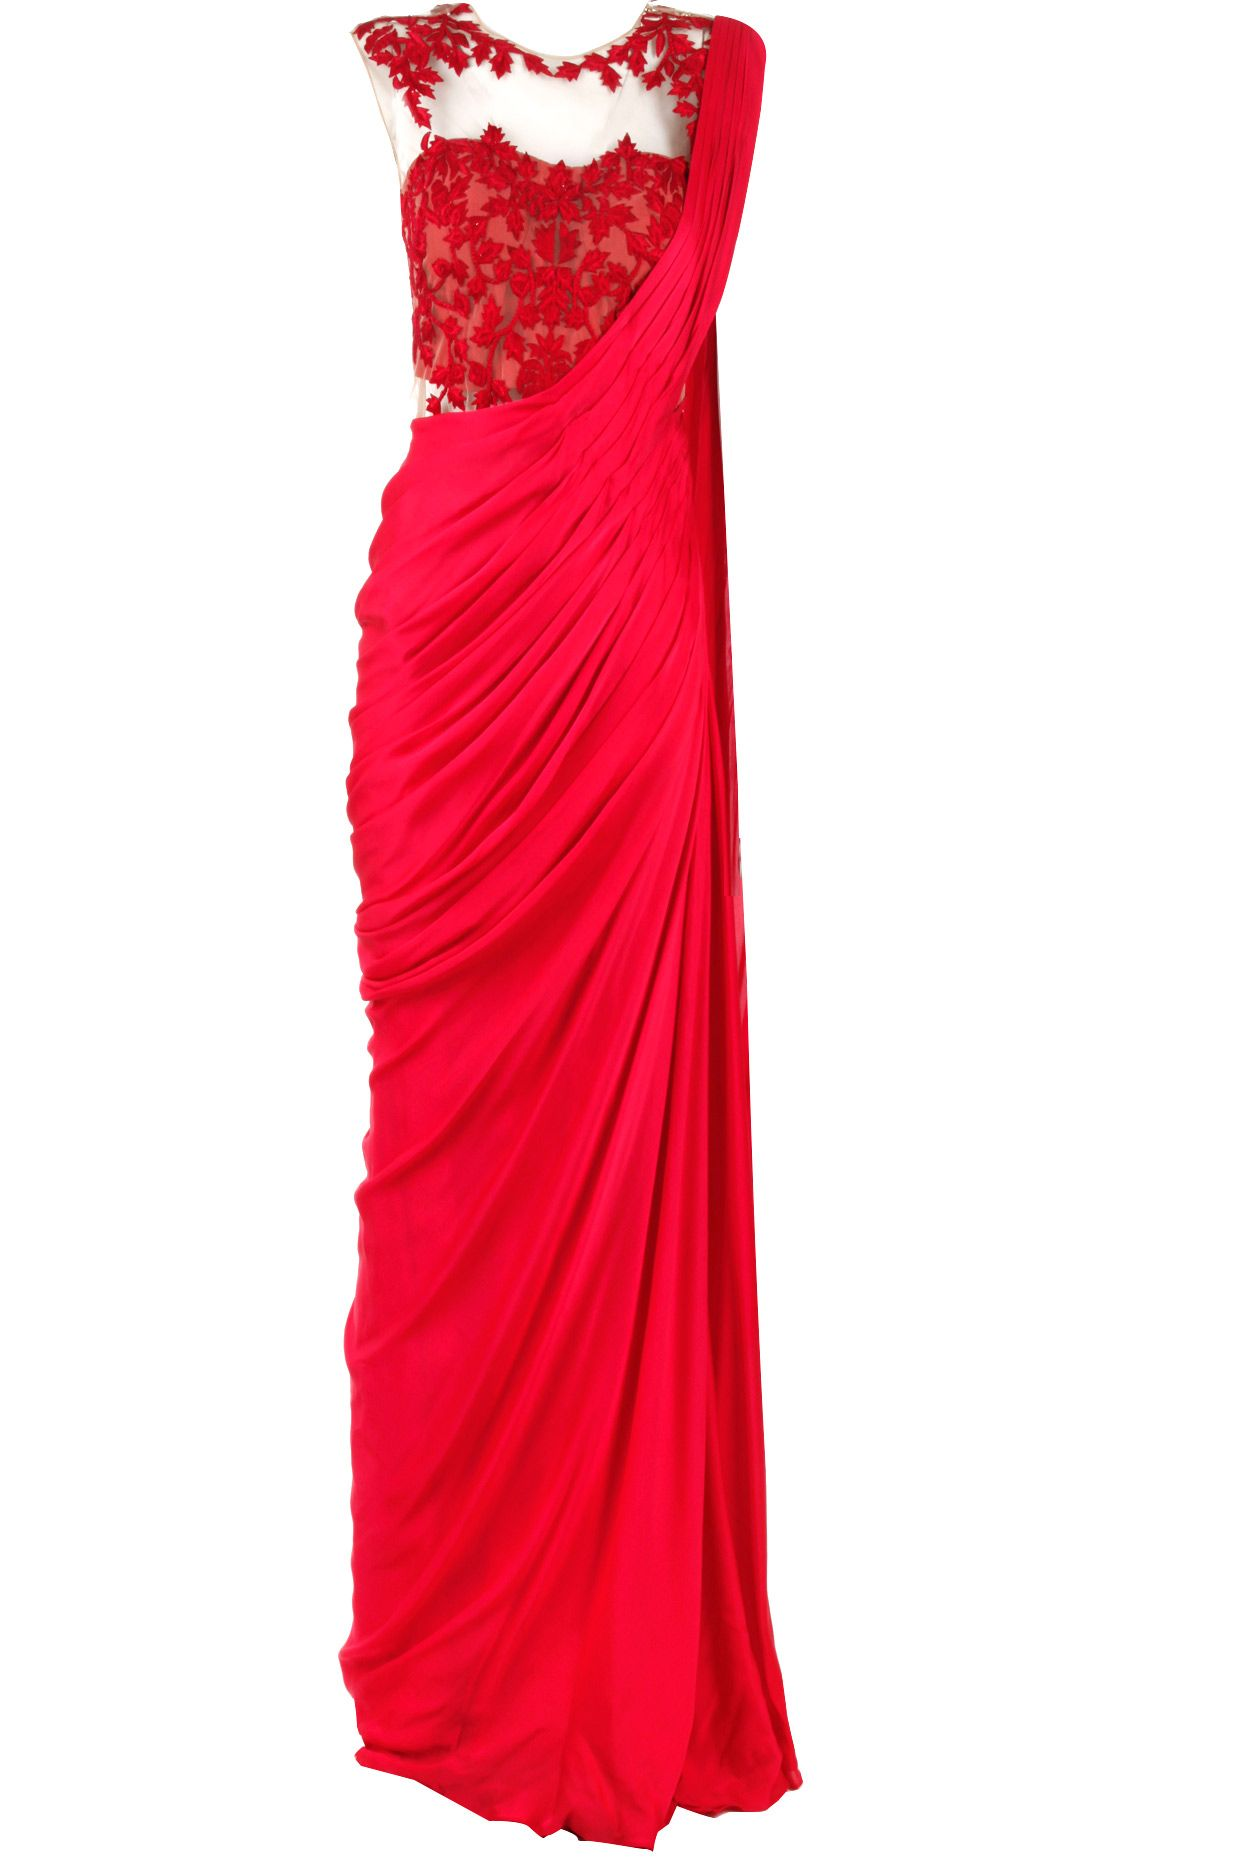 e478ec66a8 Red embroidered sari-gown available only at Pernia's Pop-Up Shop ...